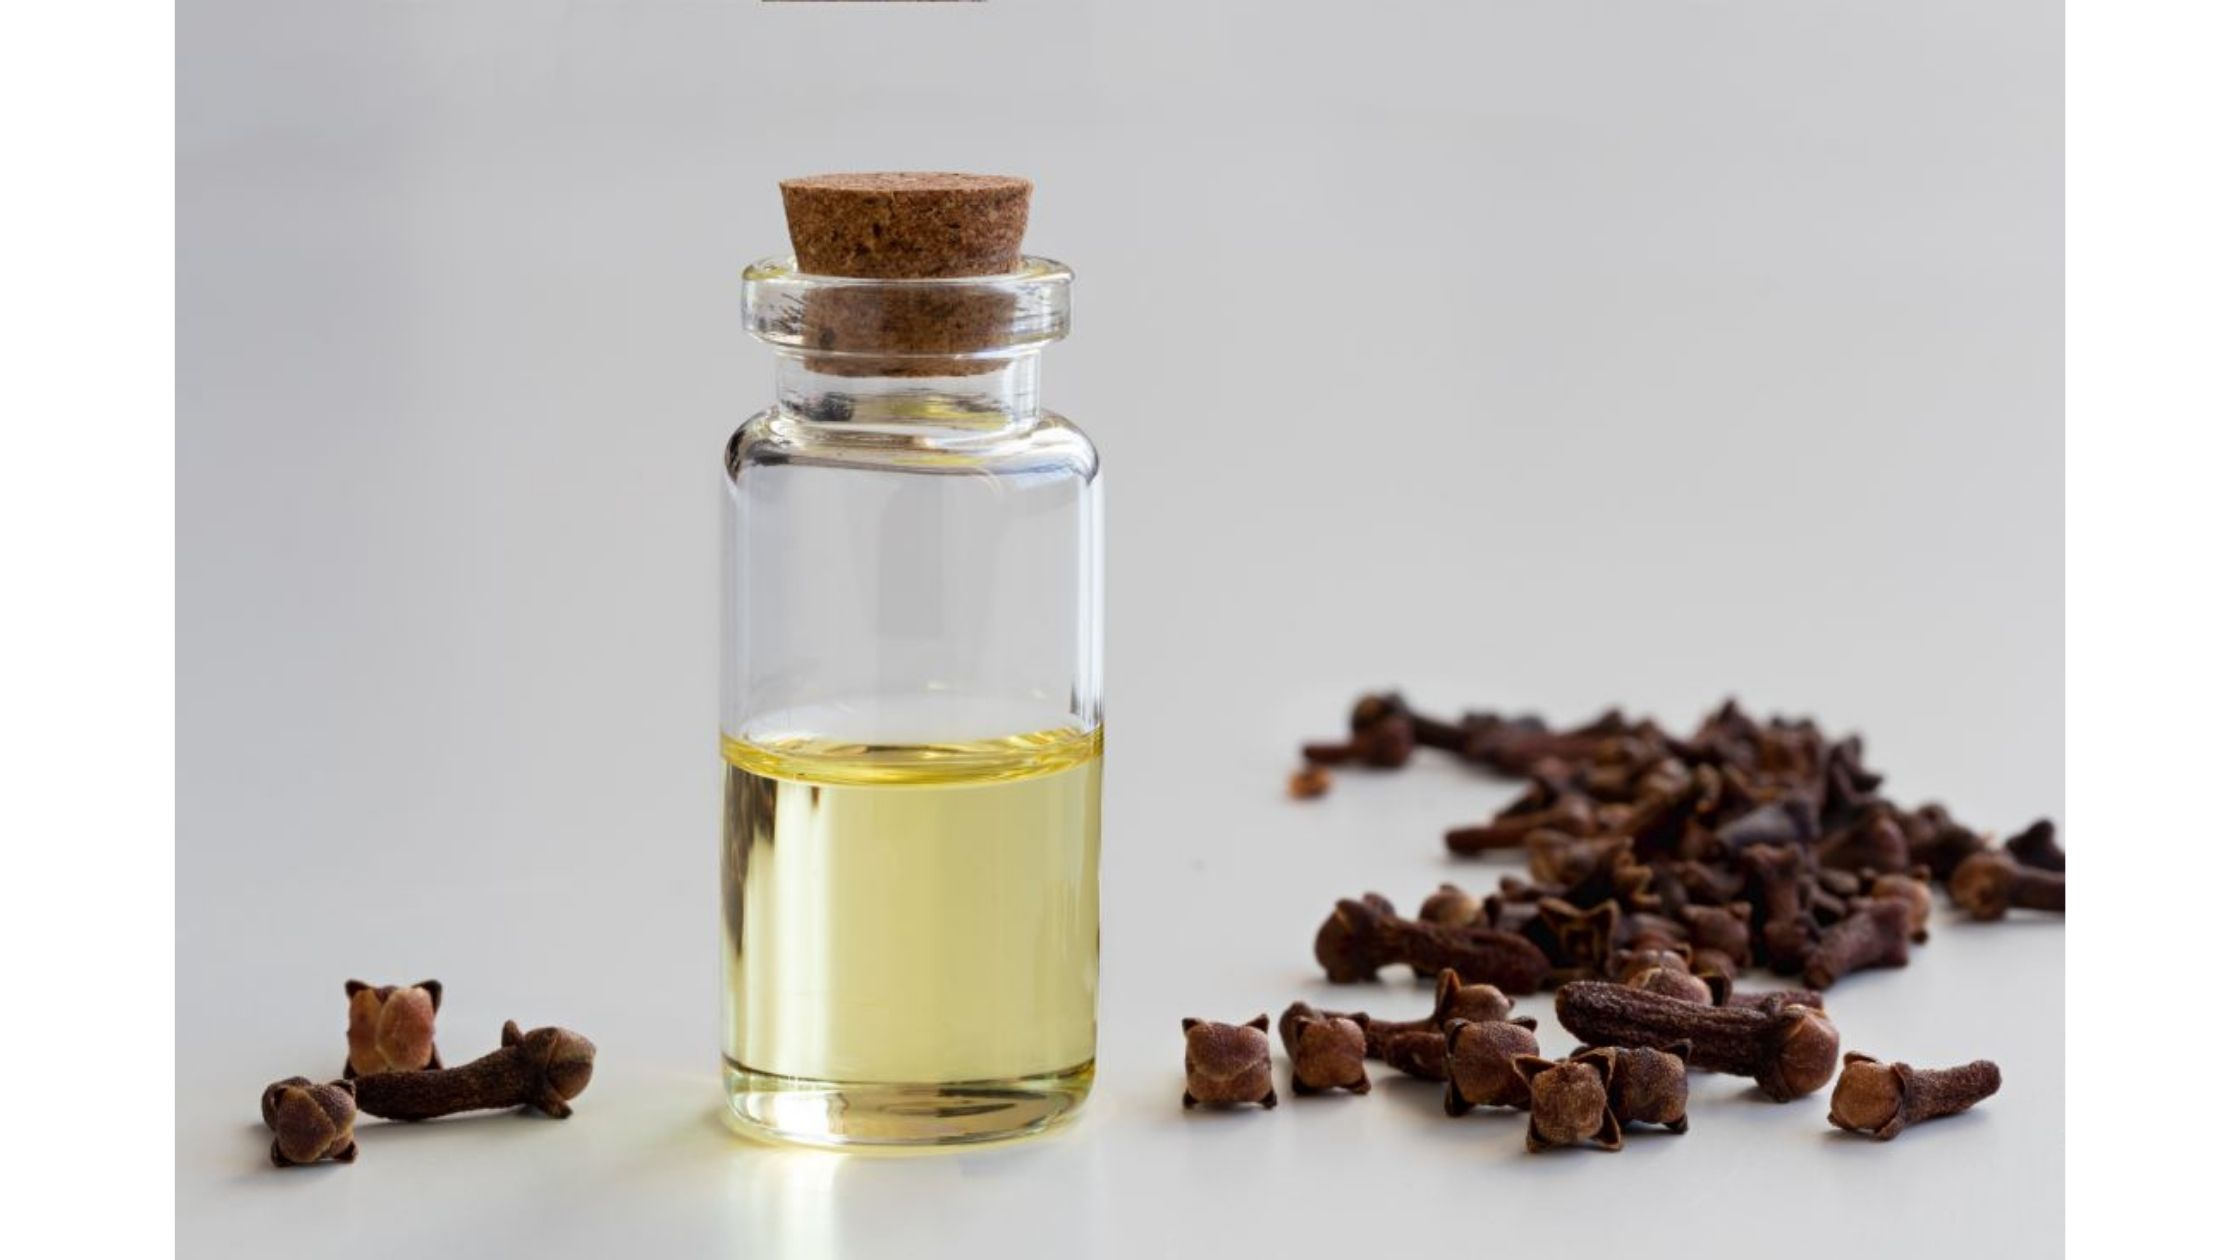 Cloves or clove oil